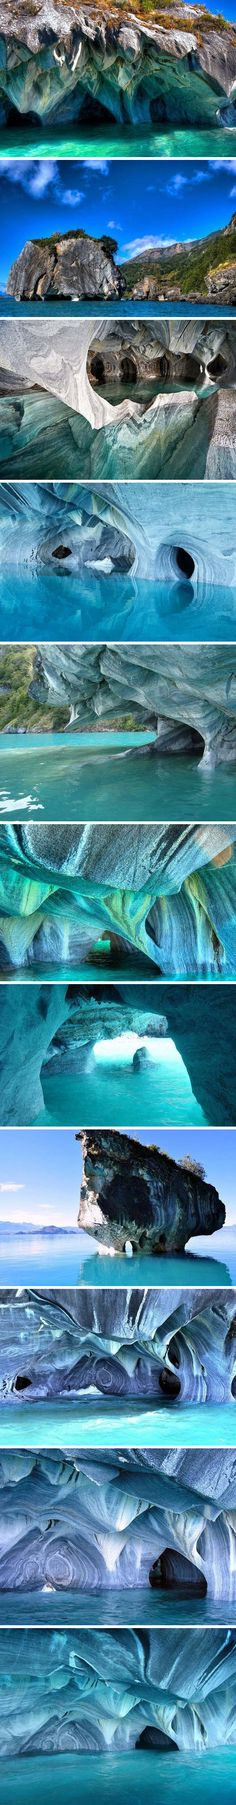 Marble Caves of Patagonia in Chile –     Lake Carrera. The lake is on the border of Argentina and Chile, and the caves are located on the side of Chile. The caves are the three main grotto: Chapel (La capillaries), Church (El Catedral) and Cave (Cueva). Visitors can explore the caves on a small boat or kayak, but only after the waters of Lake Carrera calm down and be serene.